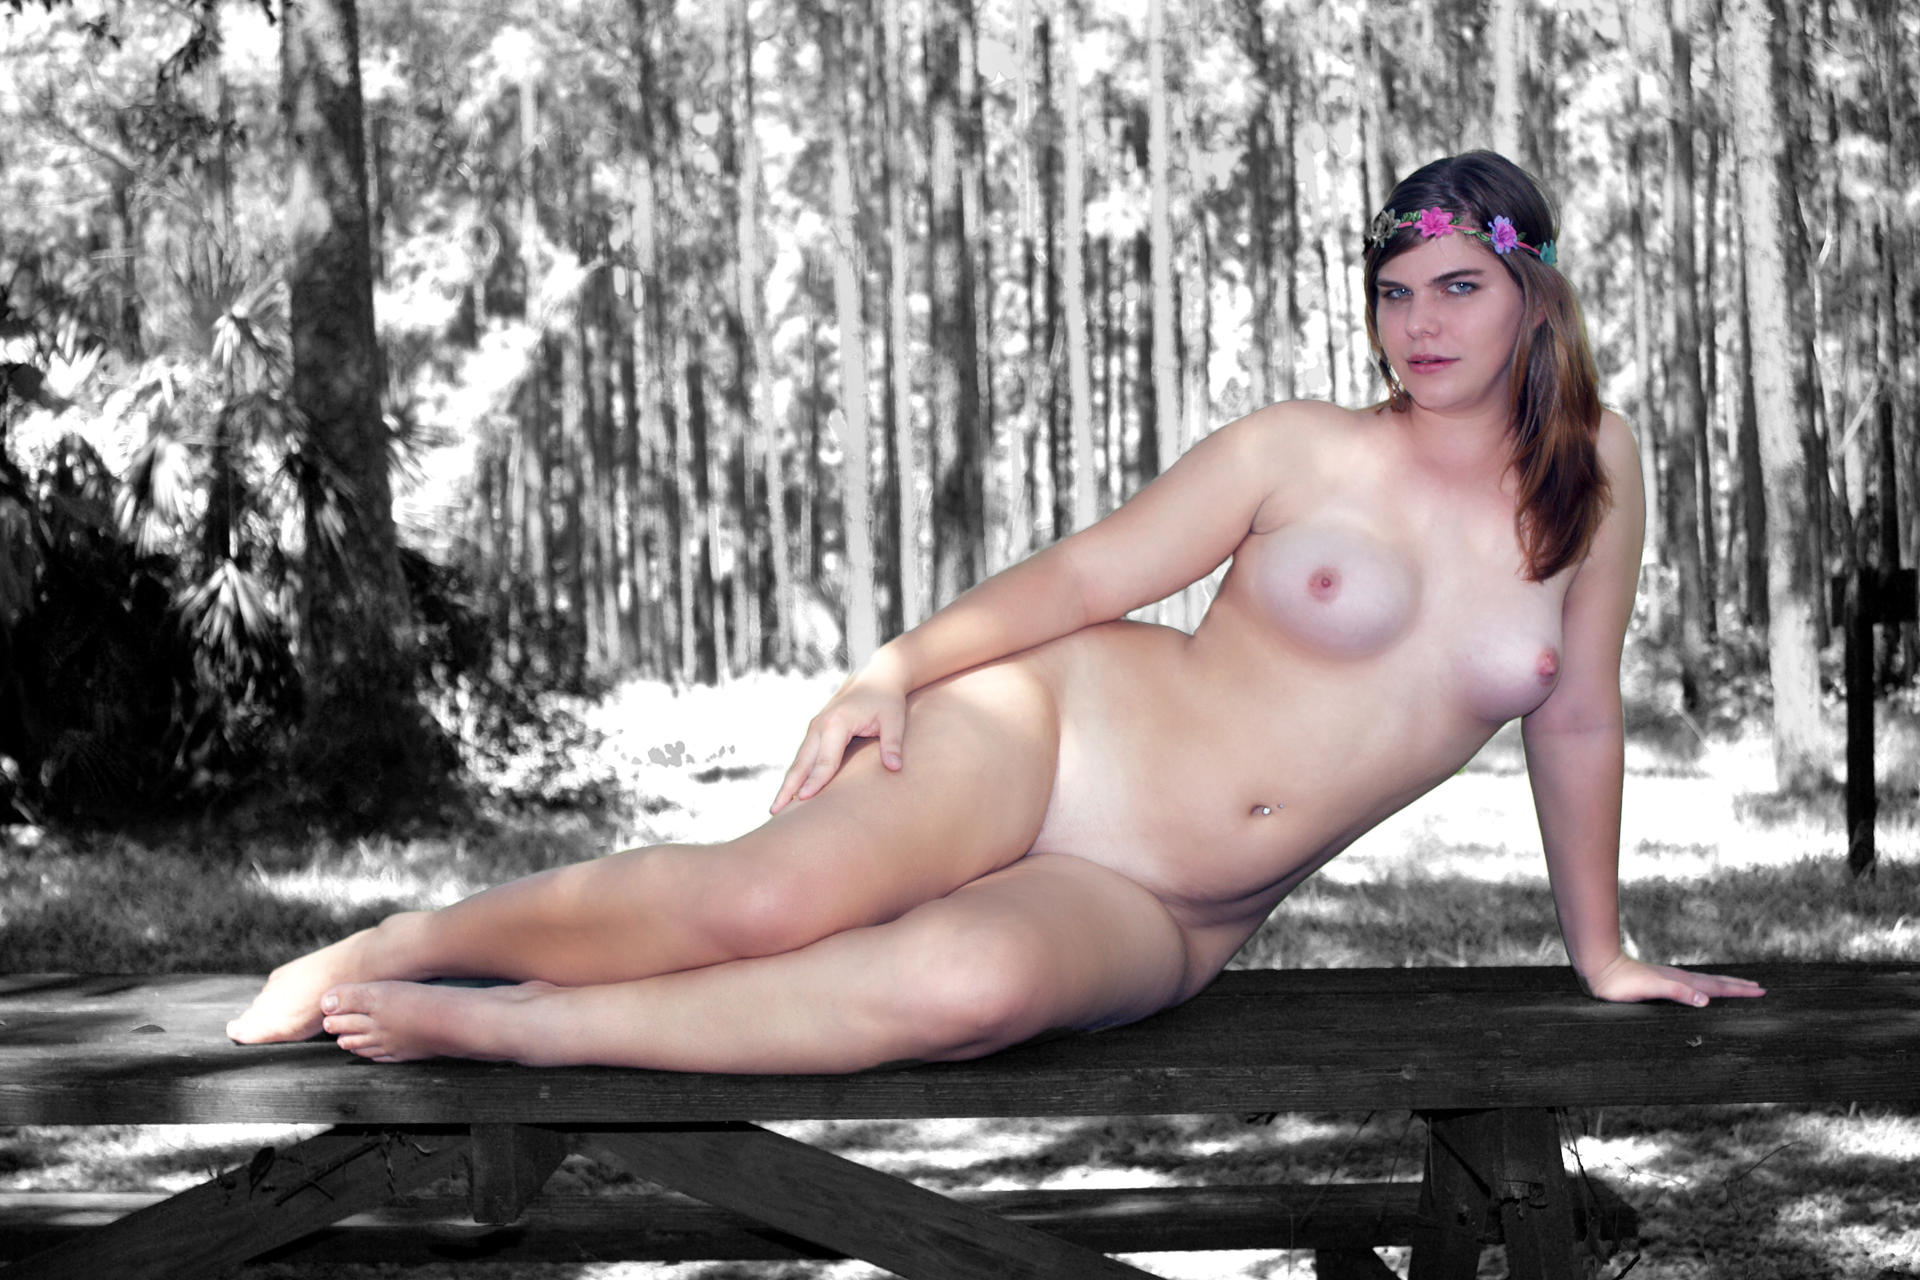 Naked in a Forest by csp-media